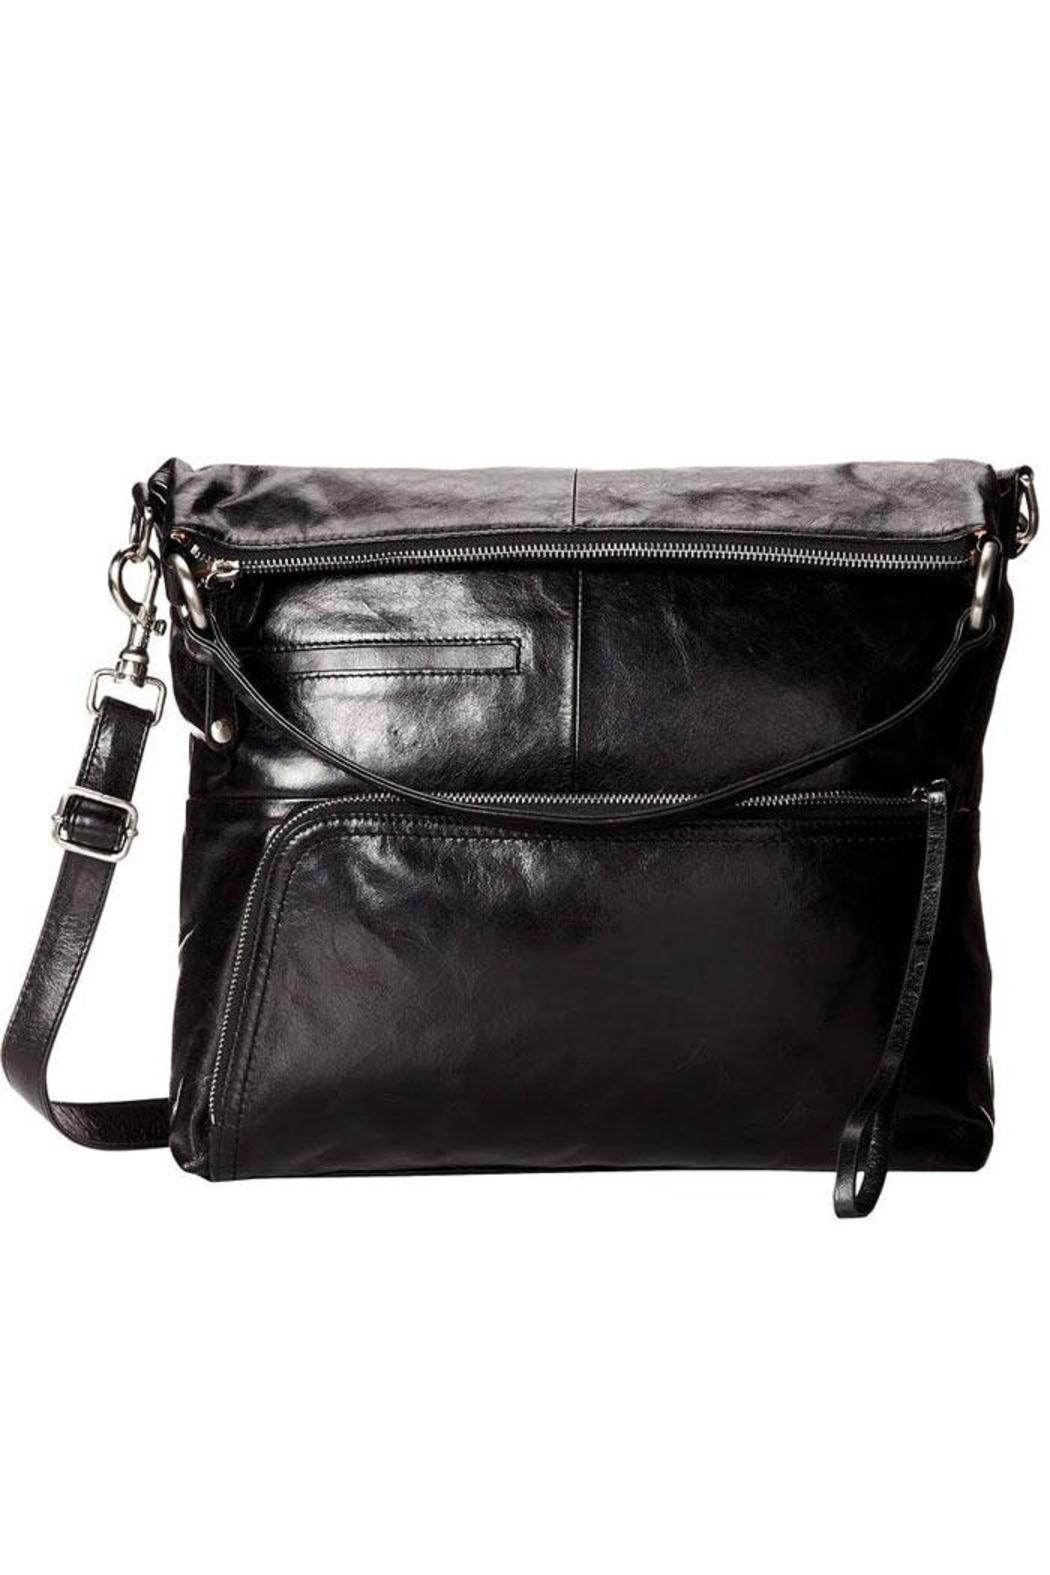 Hobo The Original Hobo Quinn Carry-All from North Carolina by ...